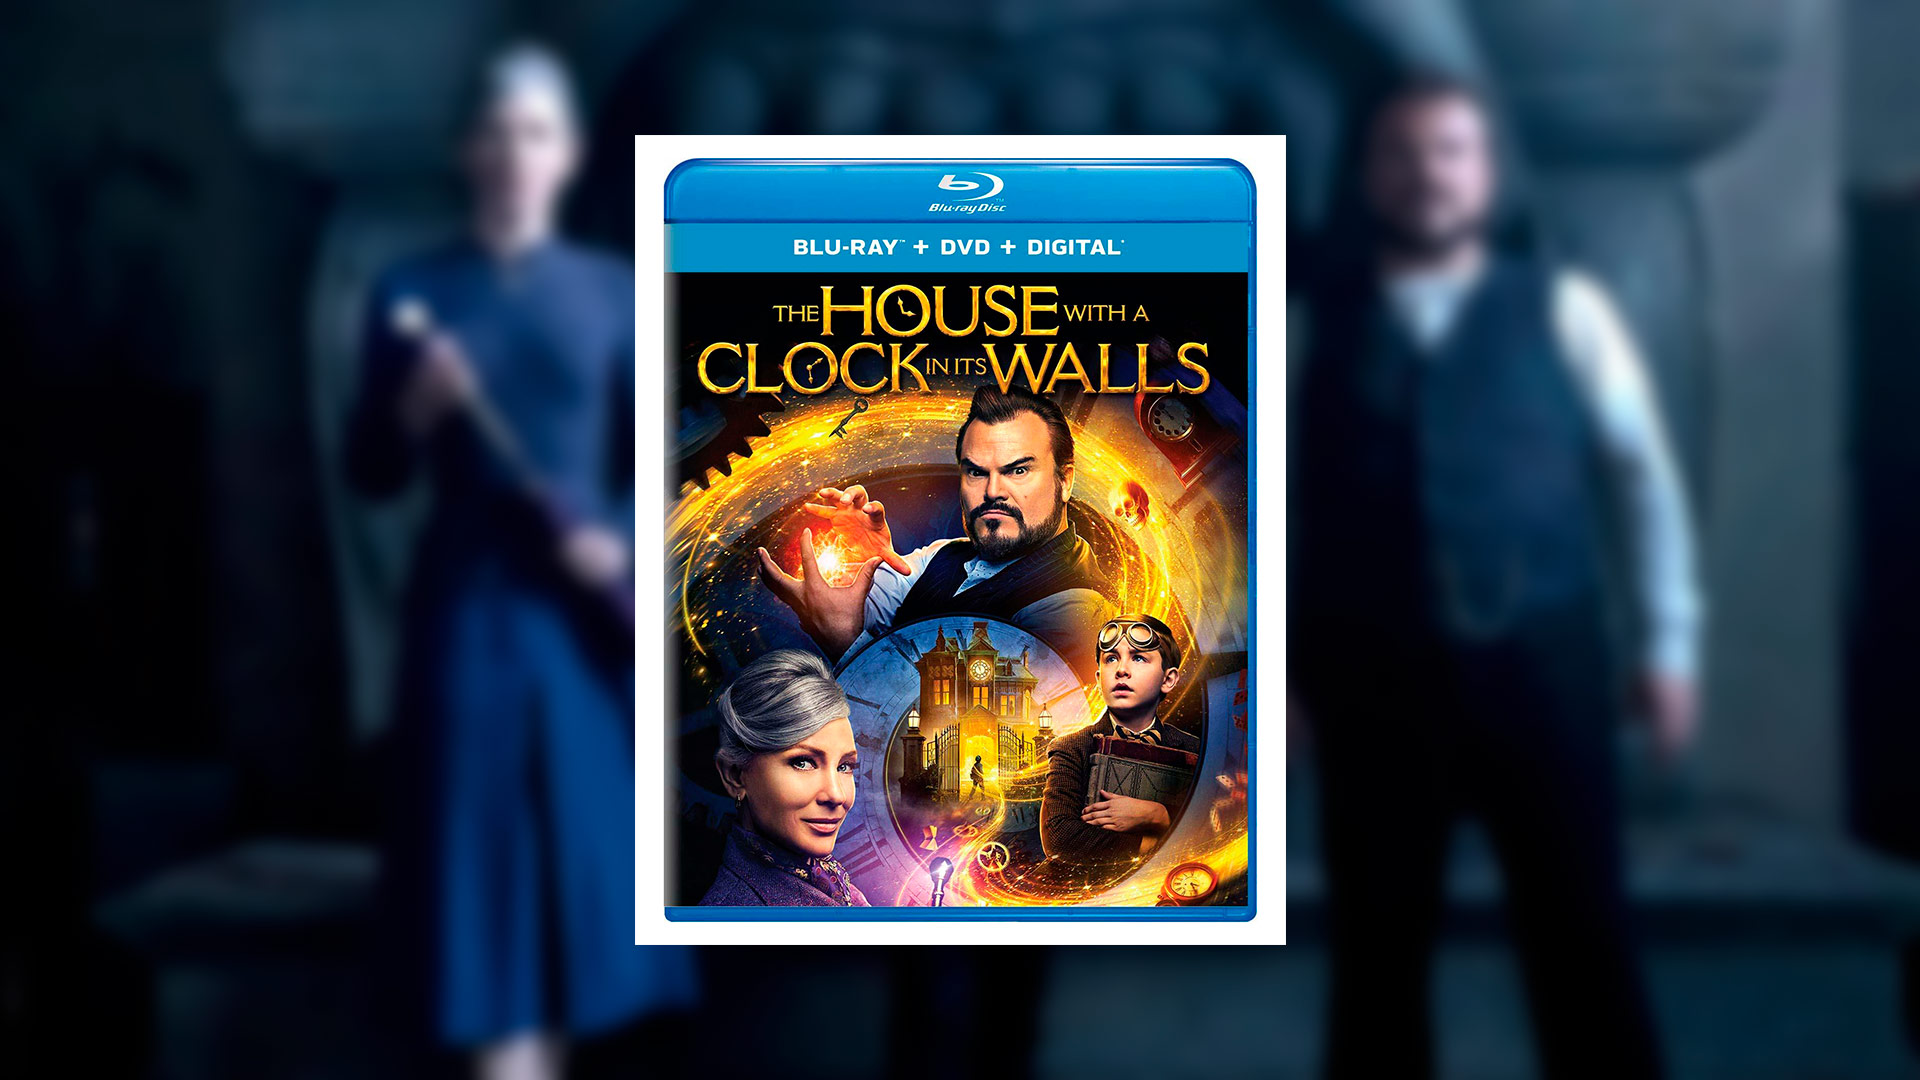 Critique du film The House With a Clock in its Walls (Blu-Ray)